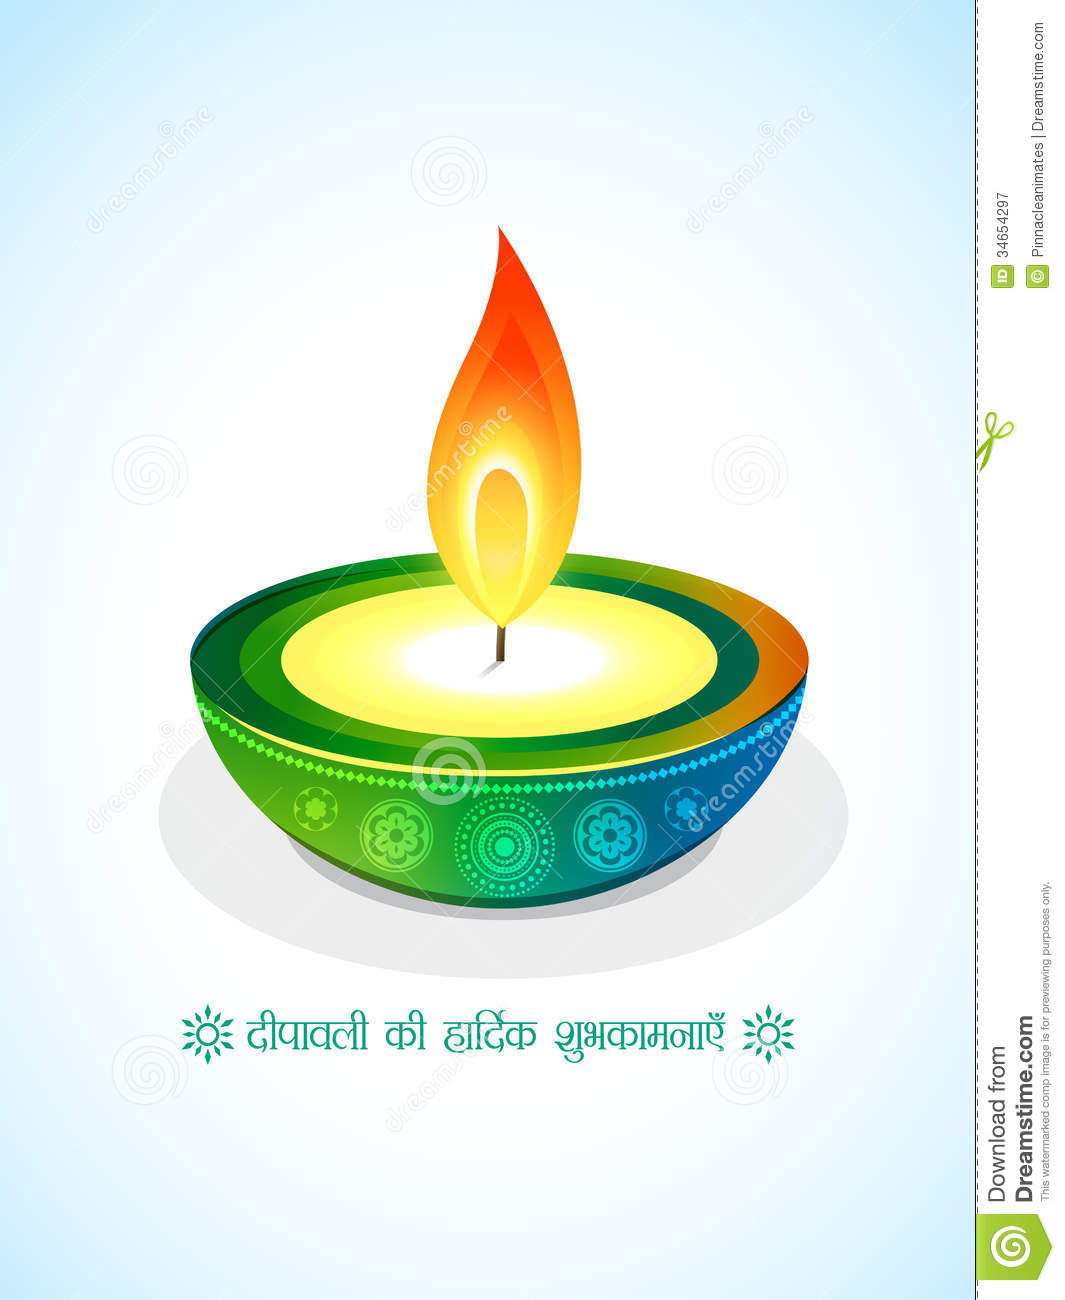 30   Cool Diwali Lamps for Diwali Lamp Designs  53kxo